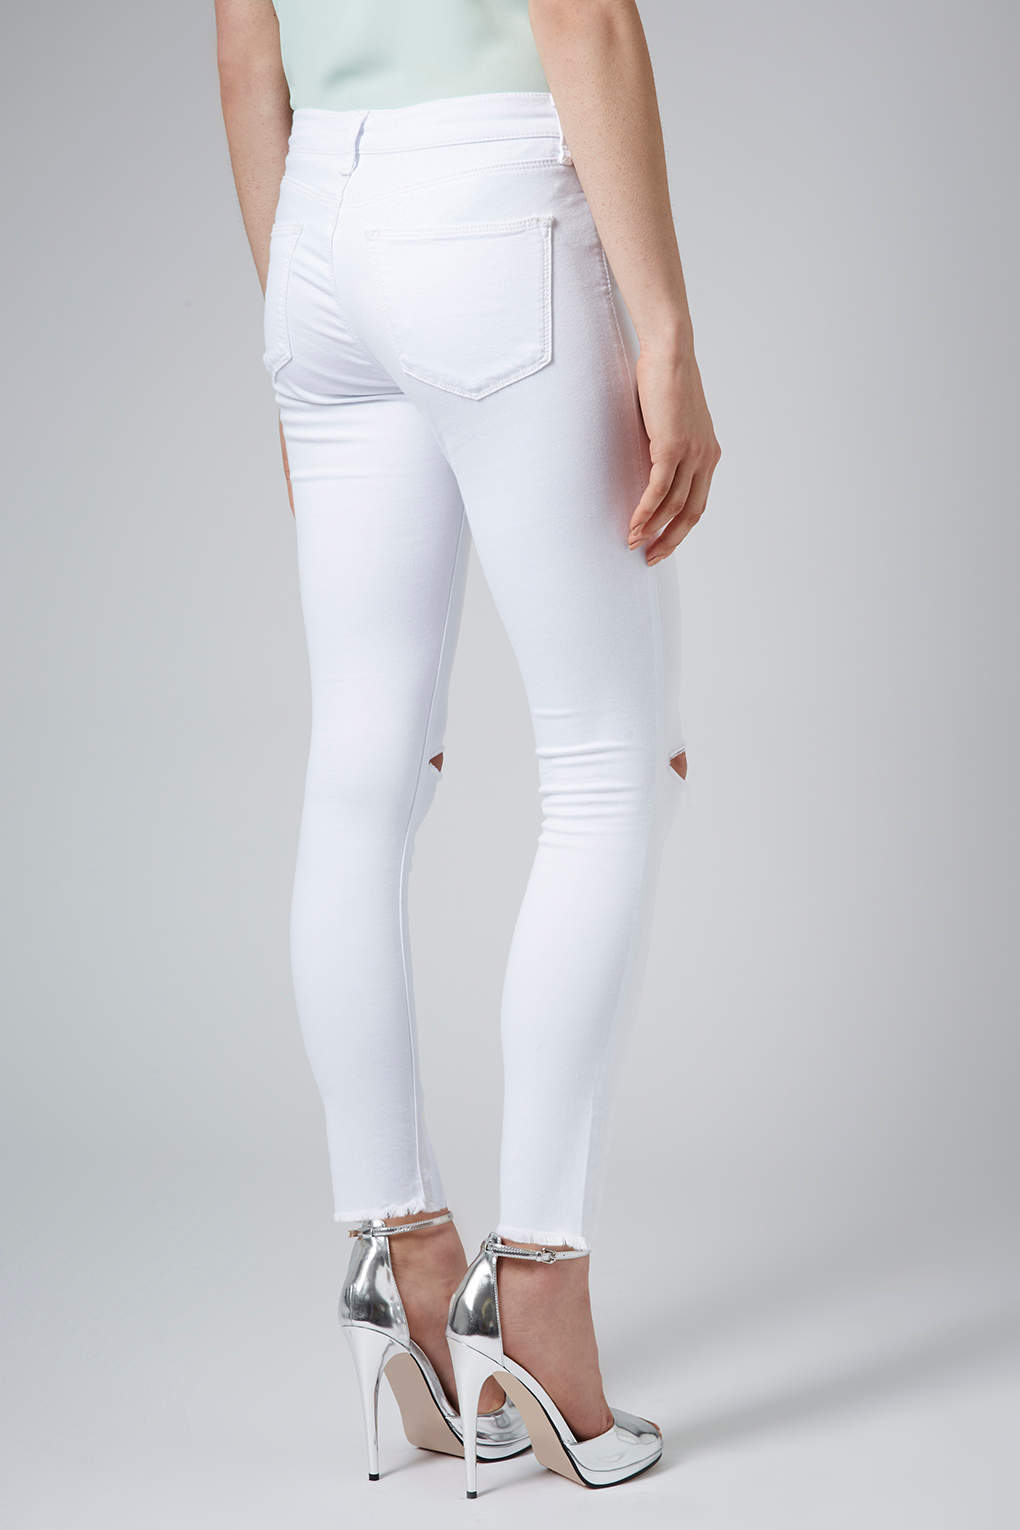 topshop petite moto white ripped leigh jeans in white lyst. Black Bedroom Furniture Sets. Home Design Ideas